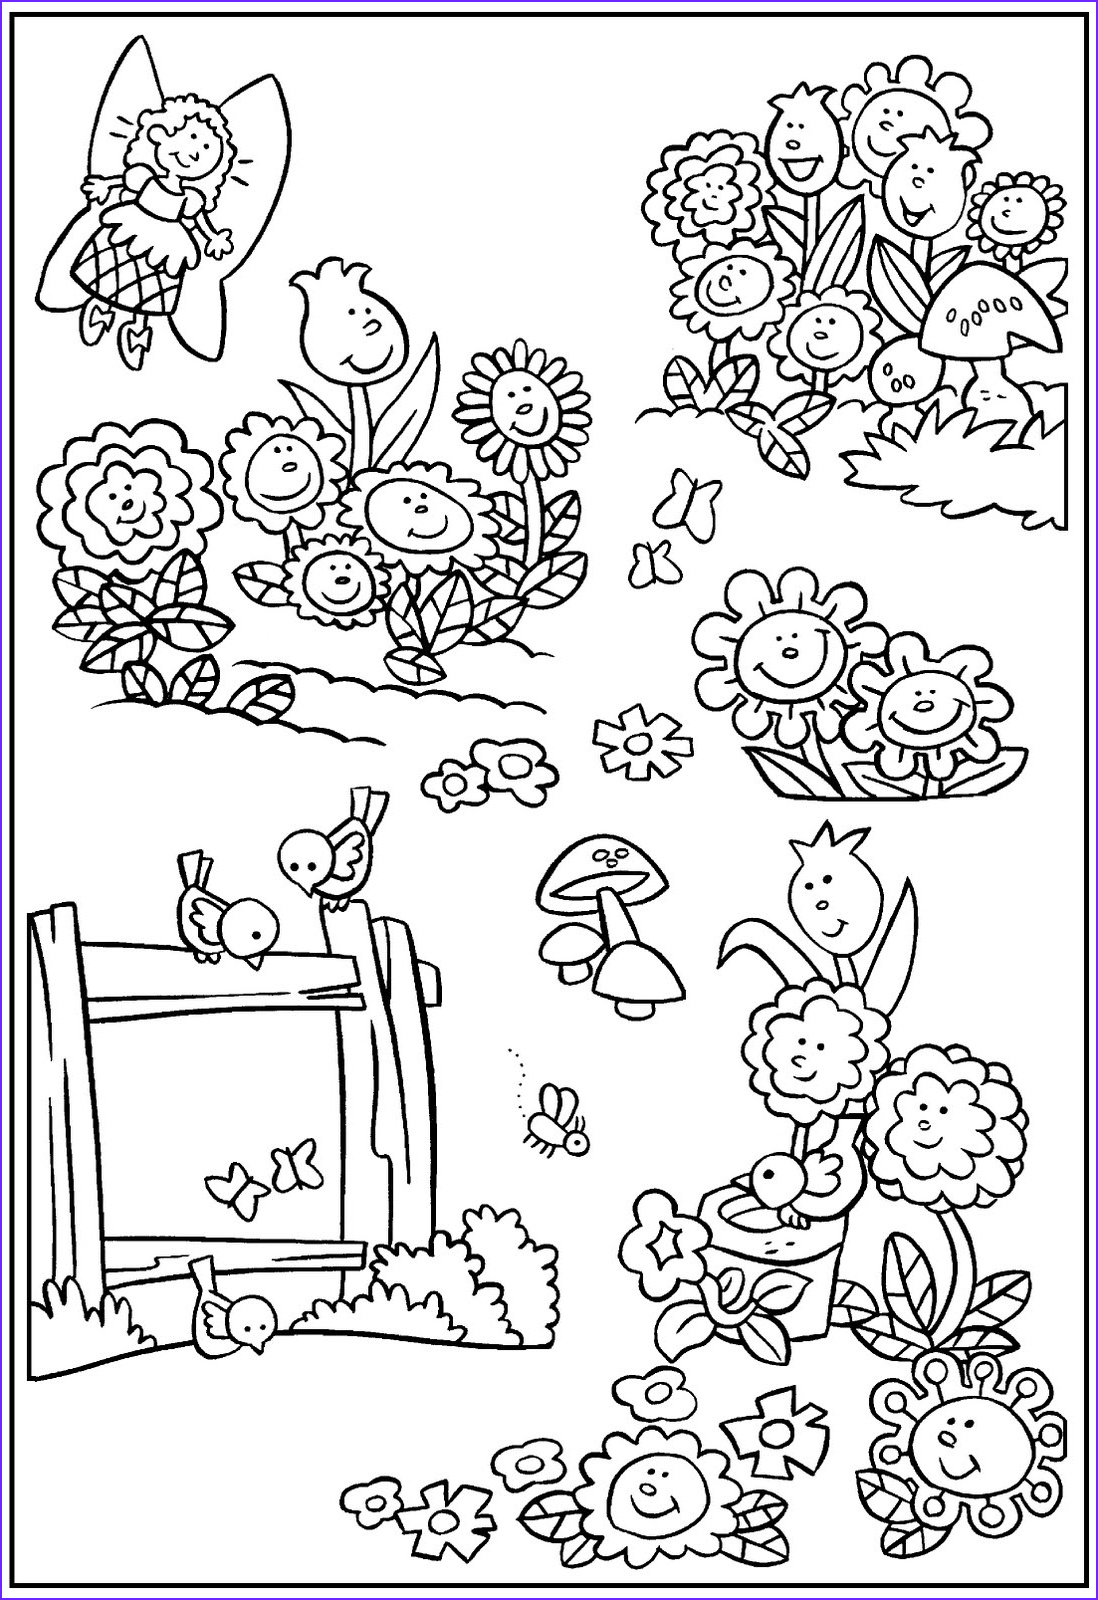 Childrens Printable Coloring Pages Awesome Photography Gardening Coloring Pages Best Coloring Pages for Kids